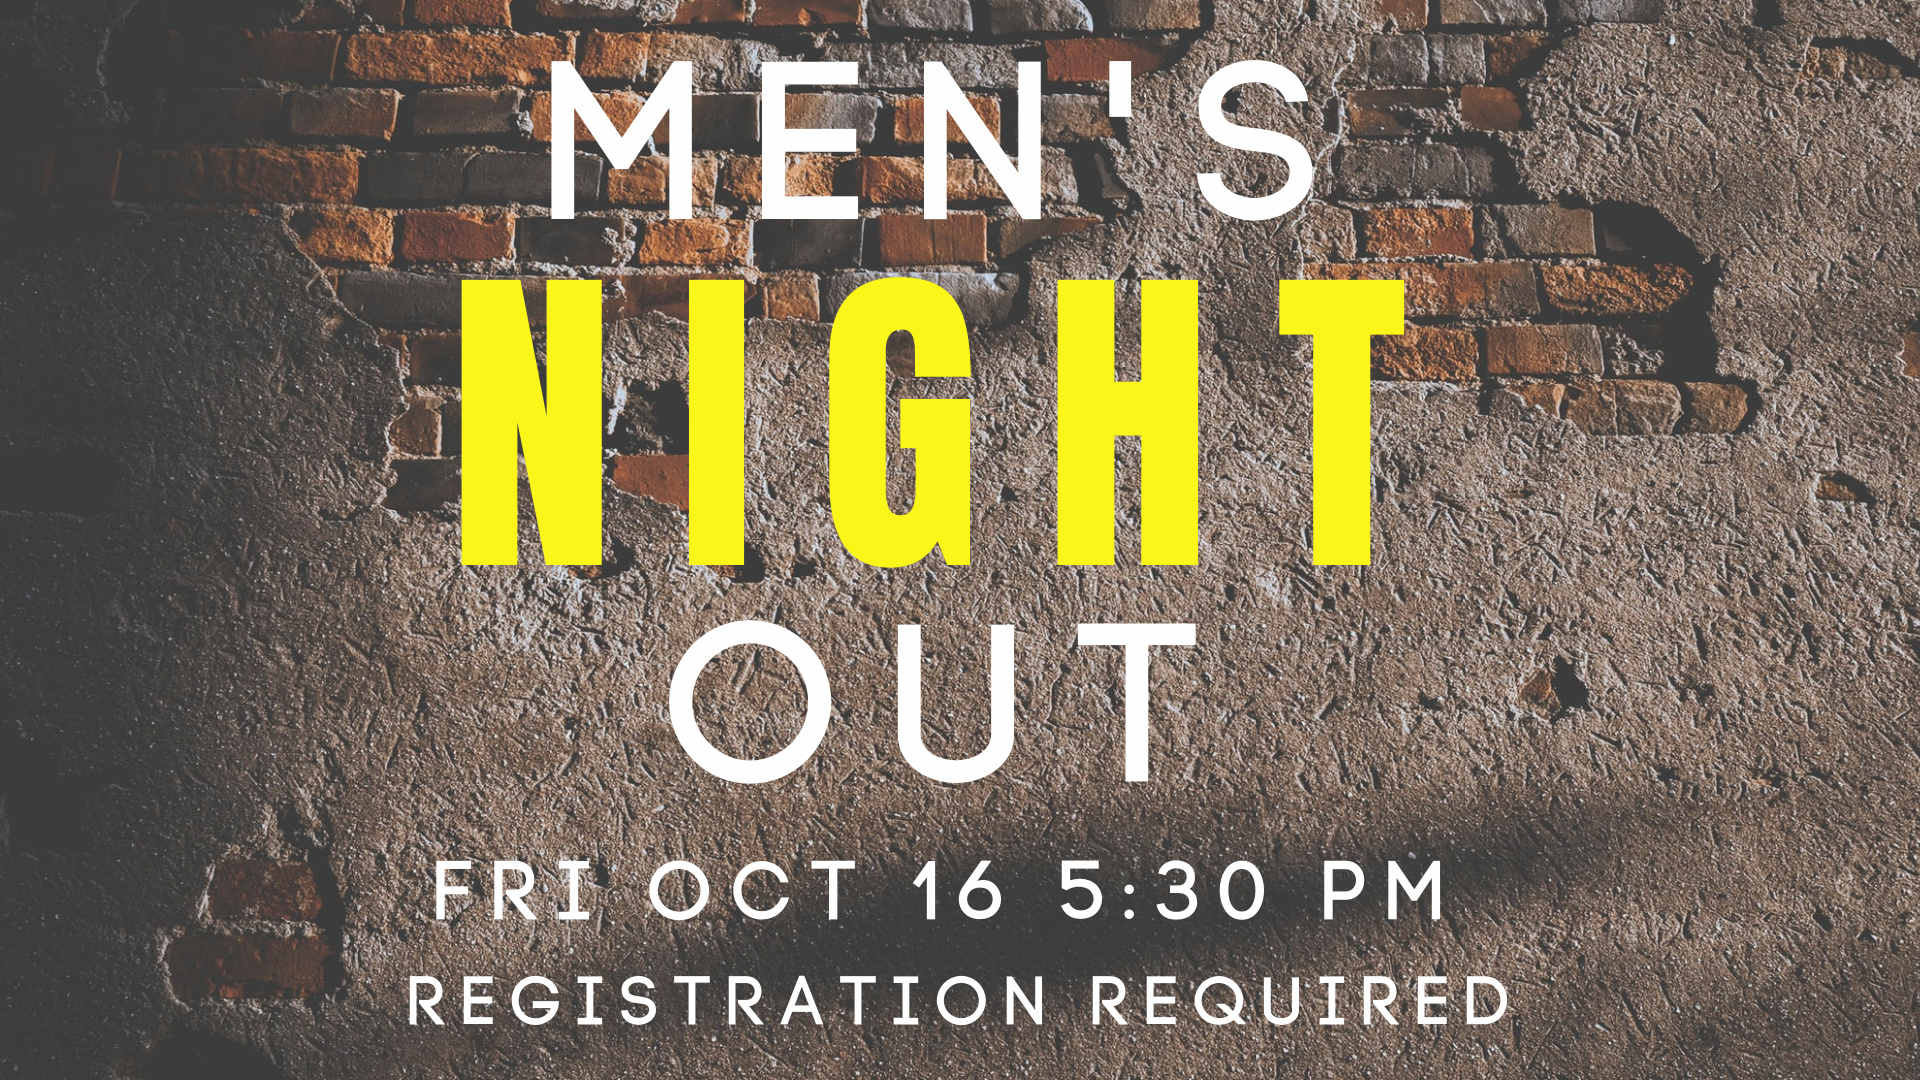 Men's Night Out registration required